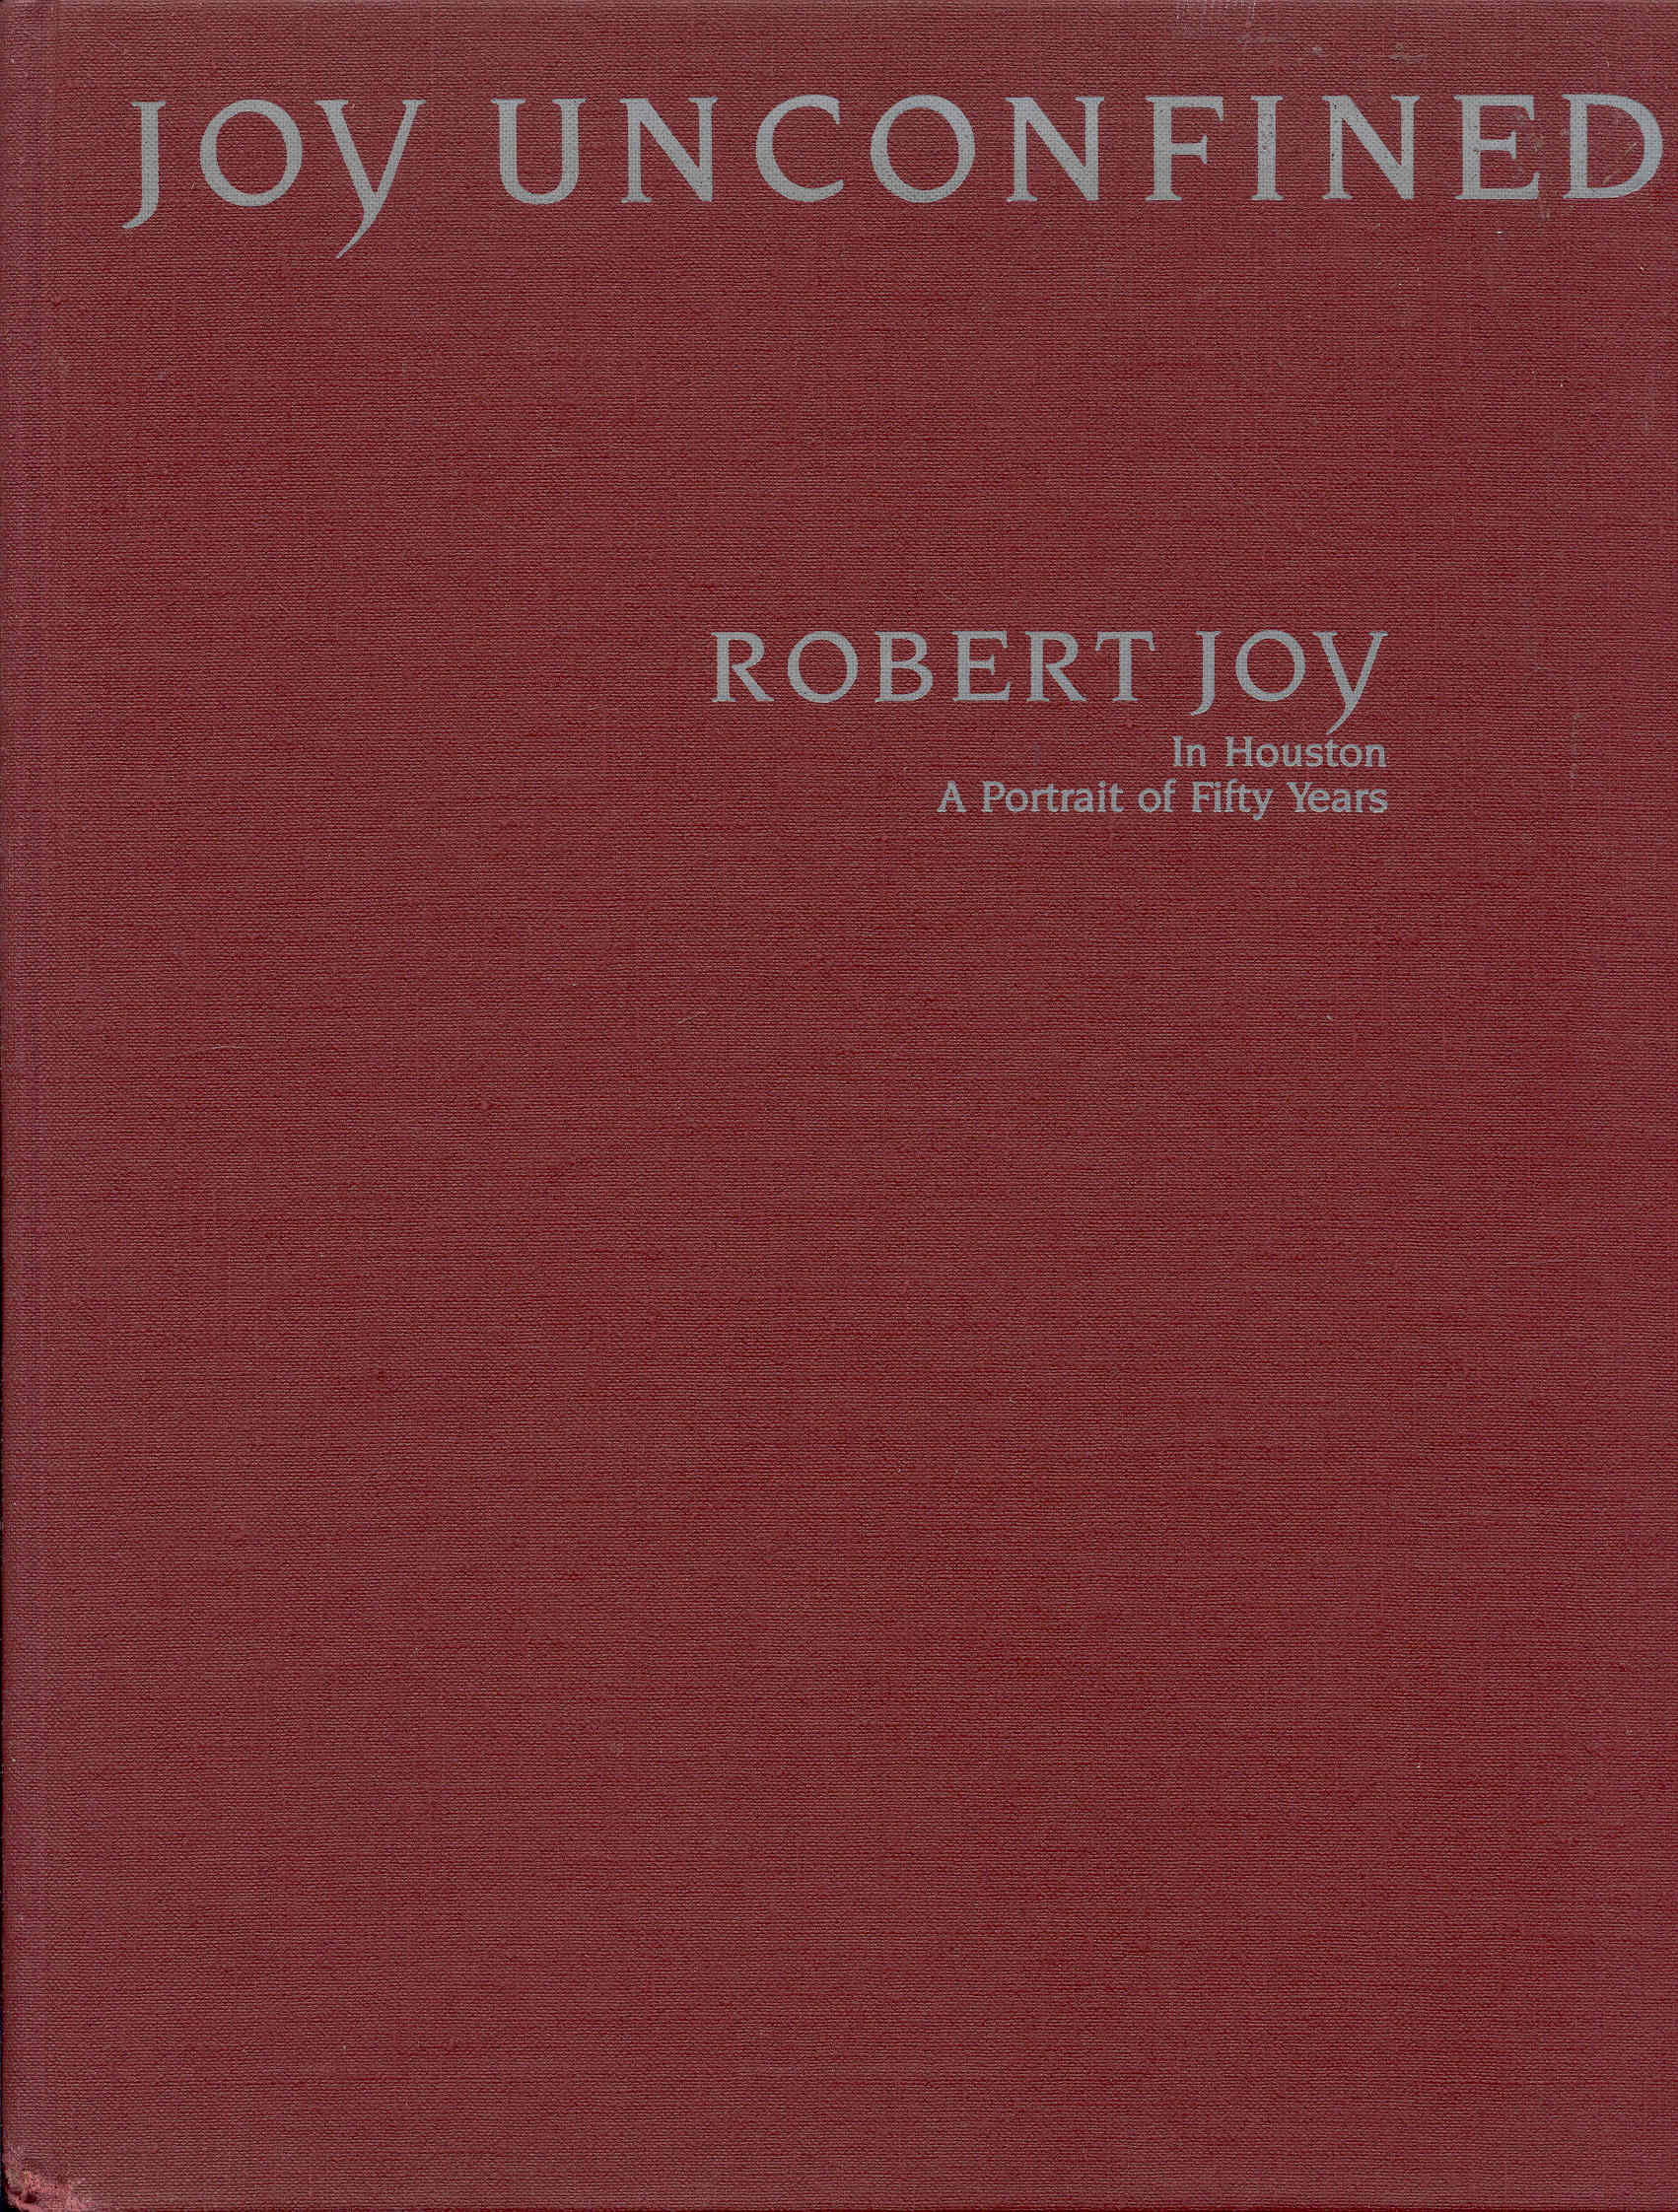 Image for Joy Unconfined: Robert Joy (In Houston, A Portrait of Fifty Years)